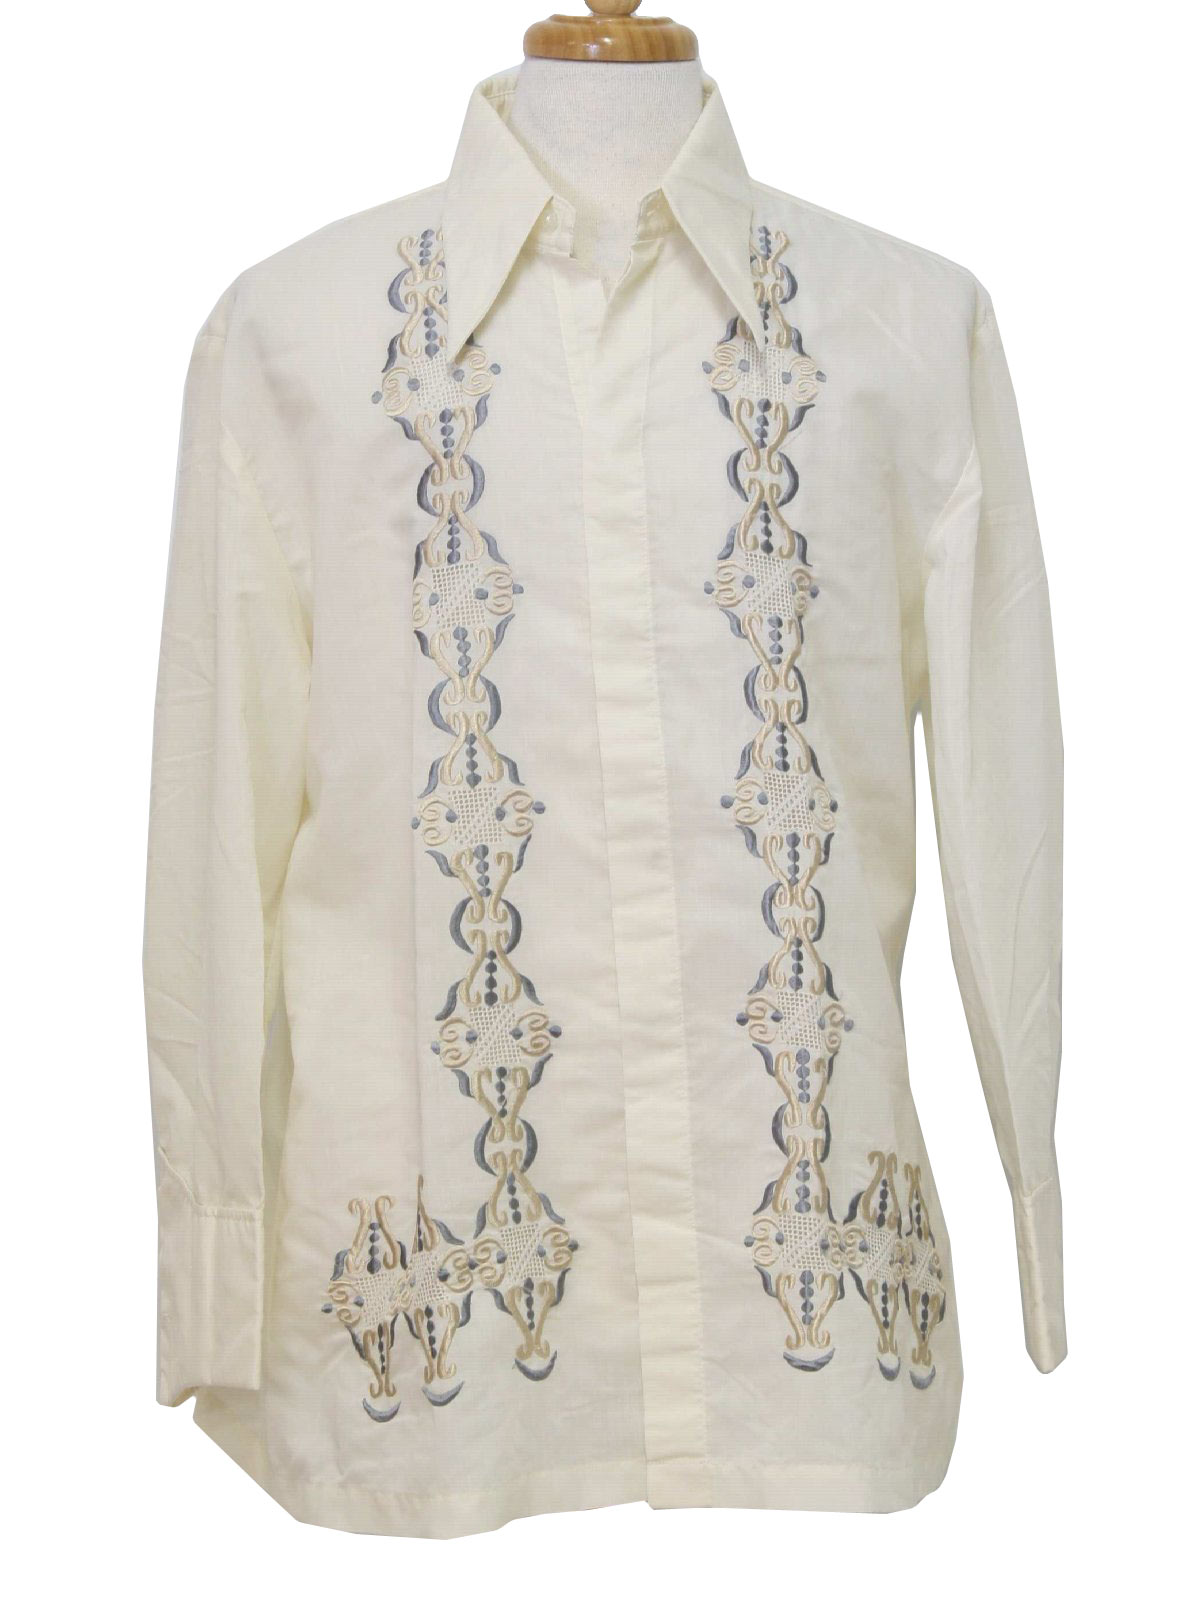 mens shaded cream on cream with royal maroon blue polyester thin knit longsleeve formal guayabera or mexican wedding shirt with button front closure